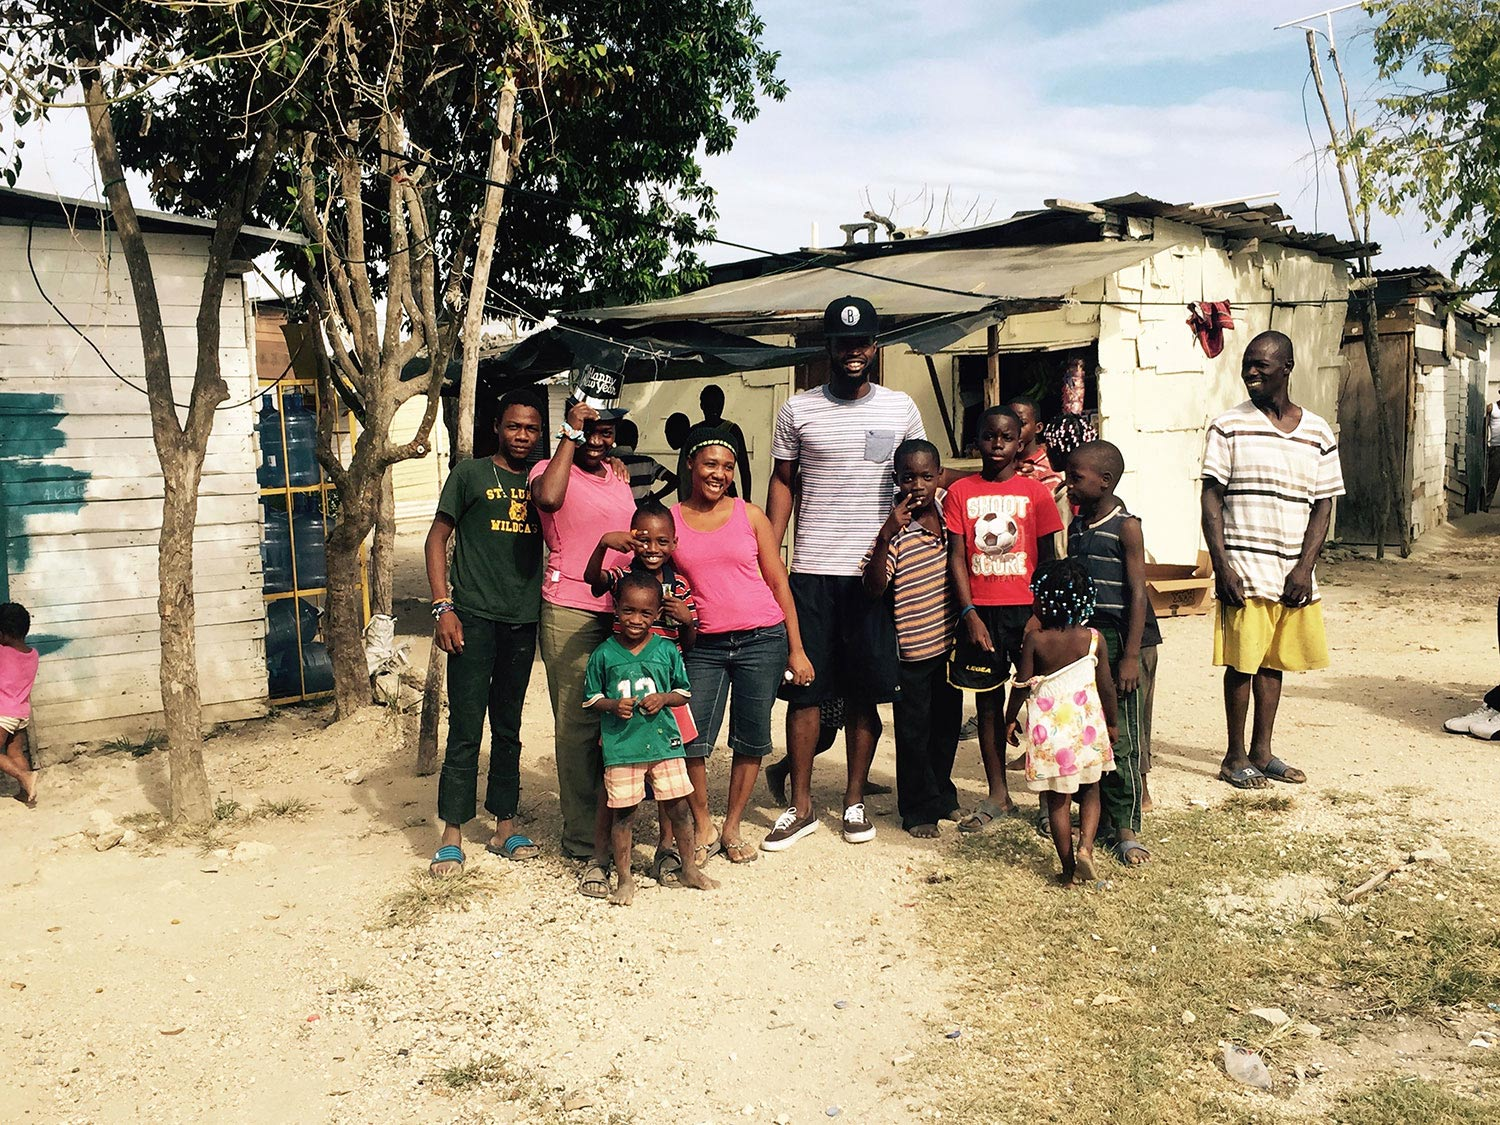 Debajo De Las Palmas- Under The Palms In Dominican Republic Inc. (UPDR) brings food, clothing, breastfeeding eduction, and other provisions to malnourished and impoverished children, women and families.